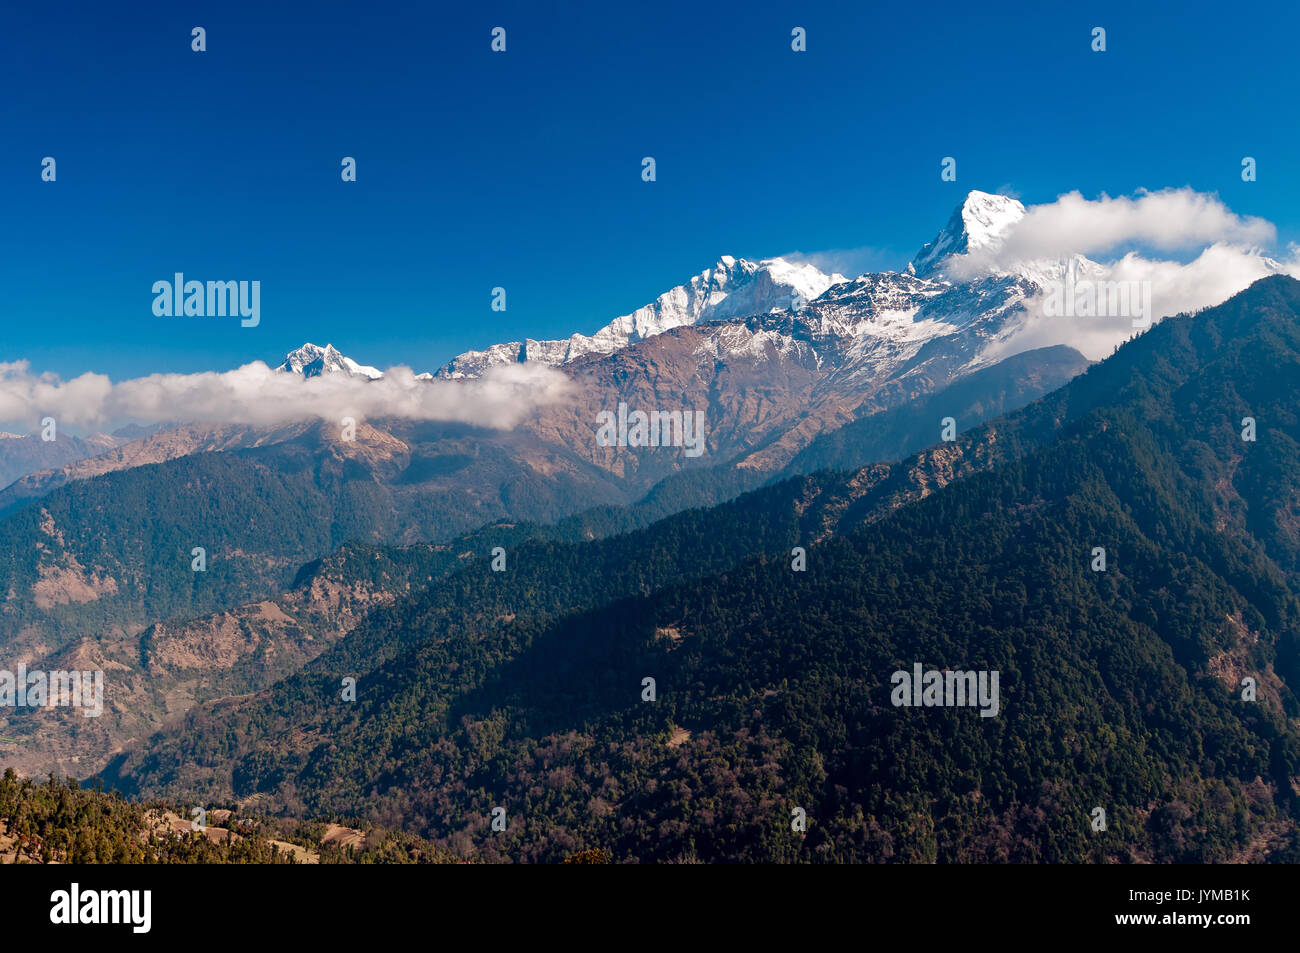 View of Fish Tail mountain or also know as Machapuchare in the Annapurna Himalayas of north central Nepal. It is revered by the local population as pa - Stock Image